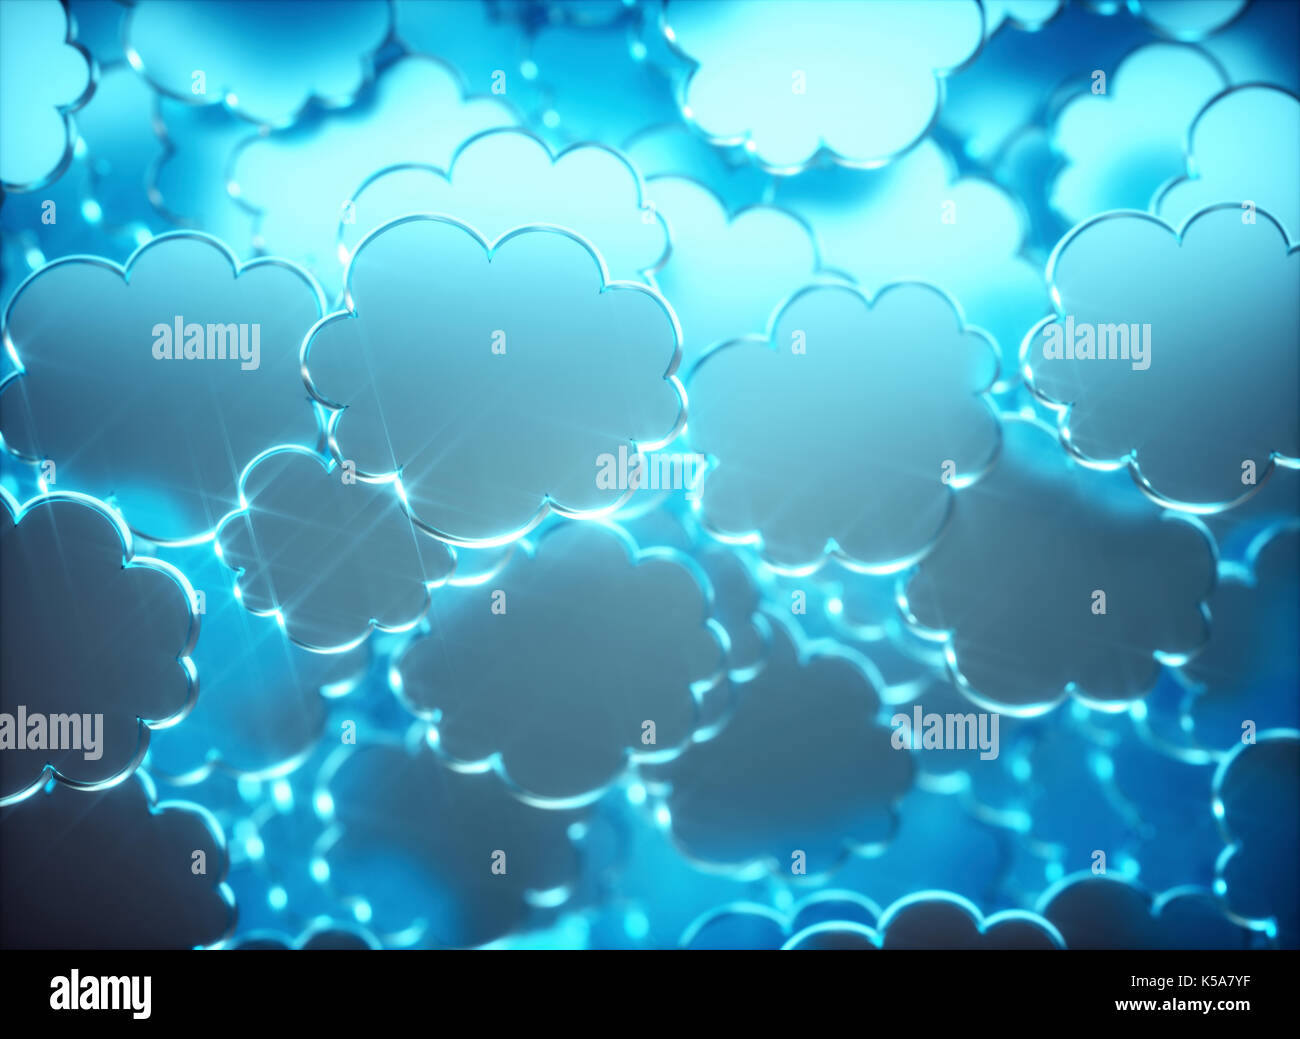 Blue clouds, illustration. - Stock Image